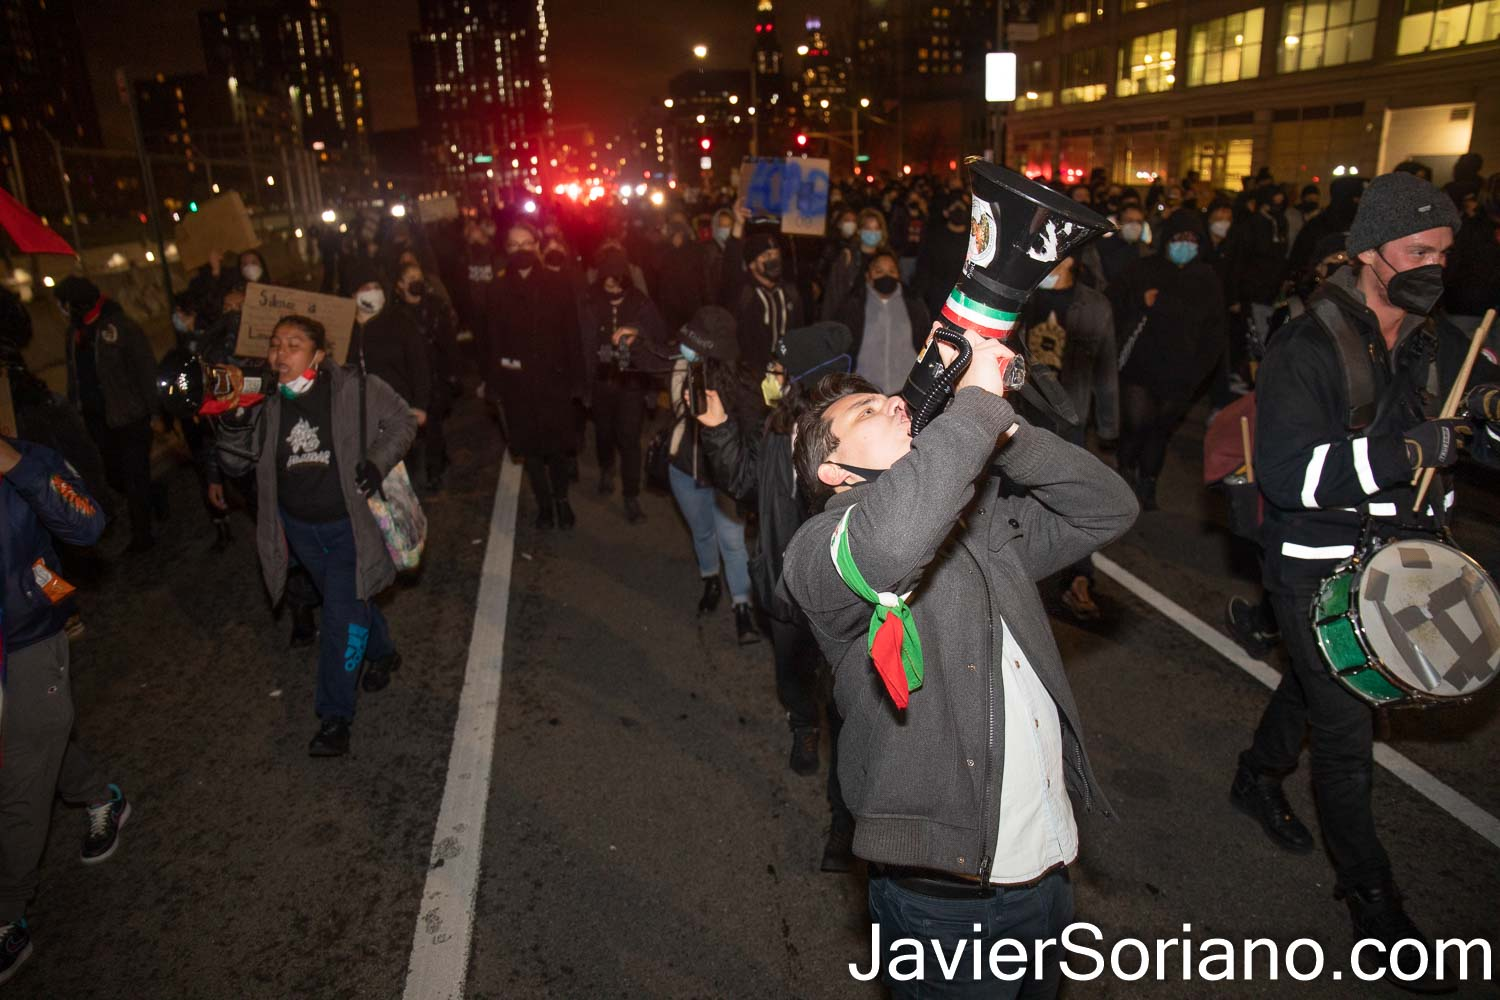 Friday, April 16, 2021. Brooklyn, New York City - The group Mexicanos Unidos and other activists gathered at Barclays Center in Brooklyn to demand justice for Adam Toledo. After the rally, peaceful protesters marched through different streets in Brooklyn.  On Monday, March 29, 2021, Chicago police officer, Eric Stillman murdered Adam Toledo. Adam was a 13 years-old Latino boy.   Photo by Javier Soriano/www.JavierSoriano.com